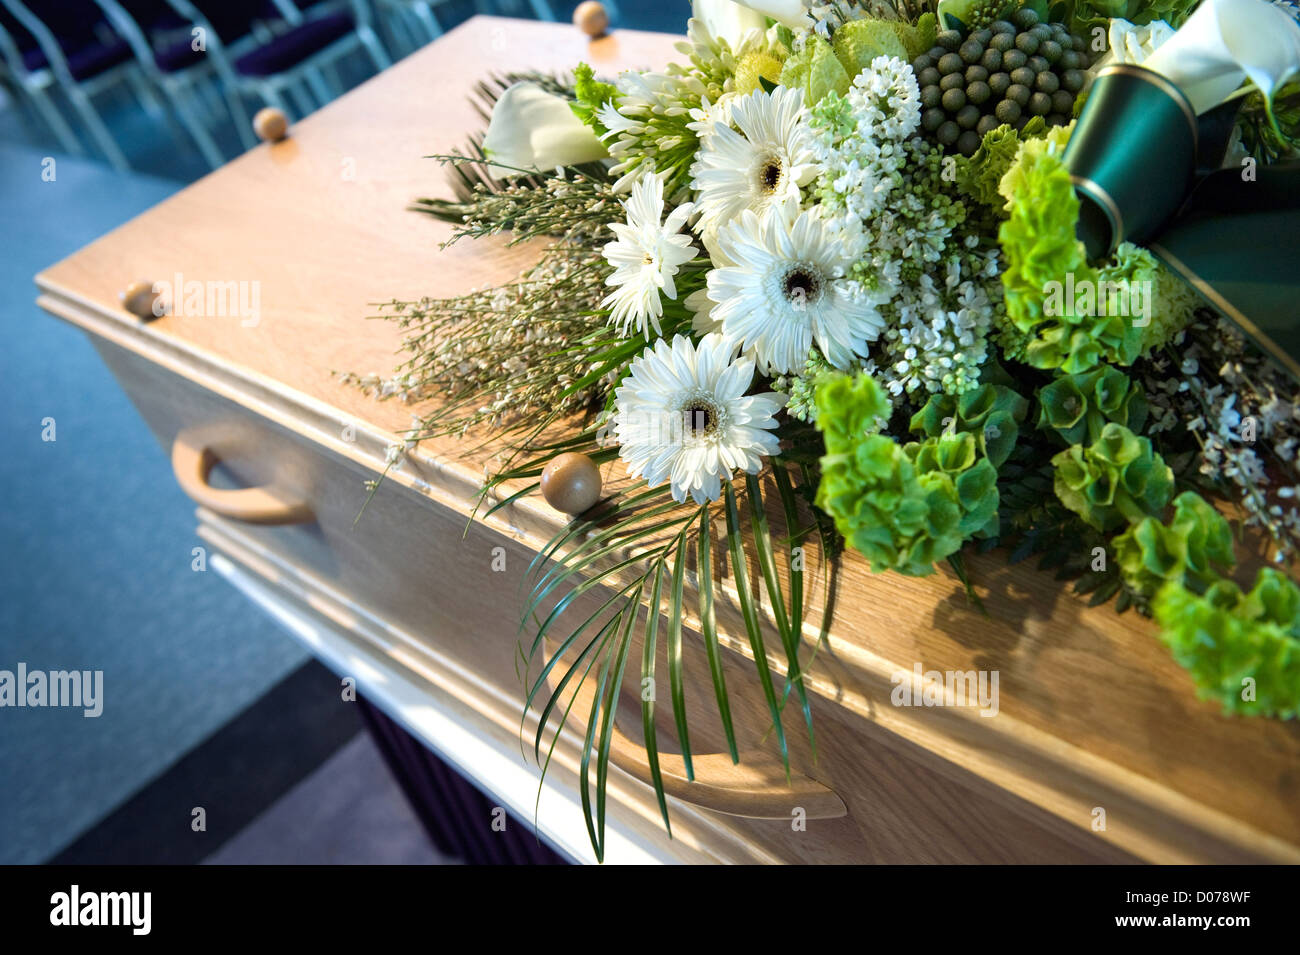 Mortuary Coffin Imágenes De Stock & Mortuary Coffin Fotos De Stock ...